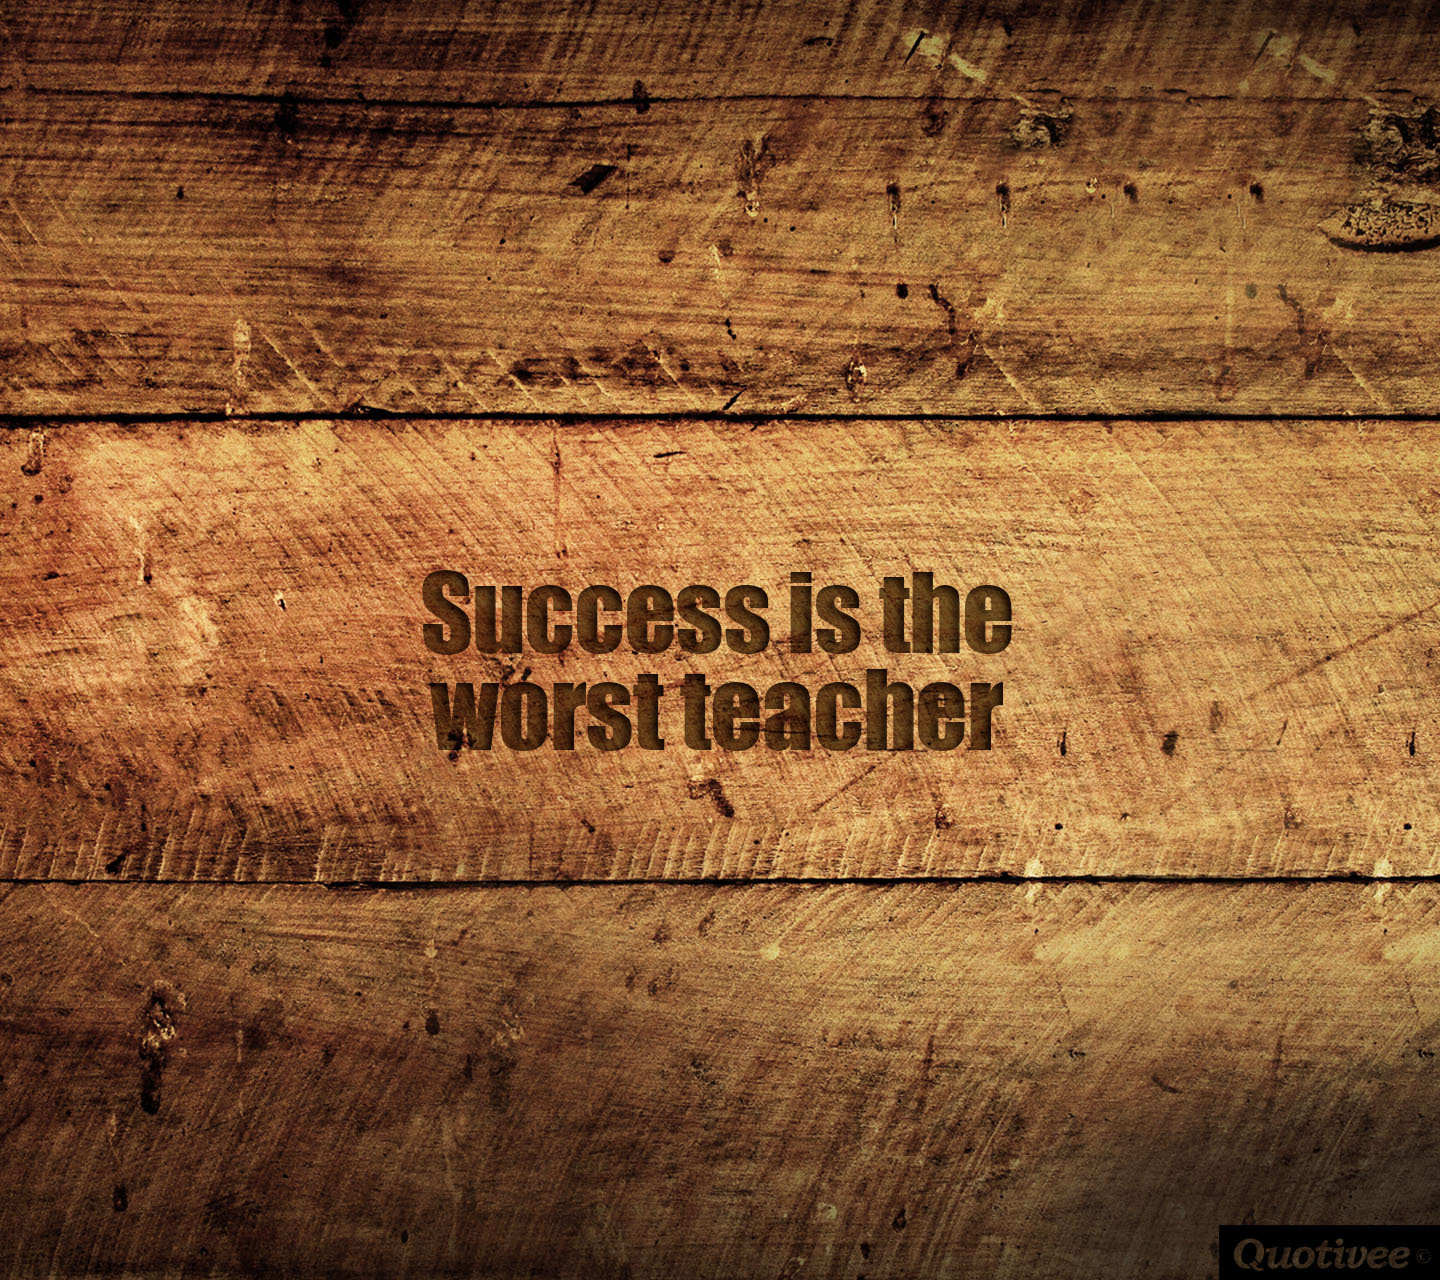 Business Inspirational Quotes Wallpaper Download Success Is The Worst Teacher Inspirational Quotes Quotivee